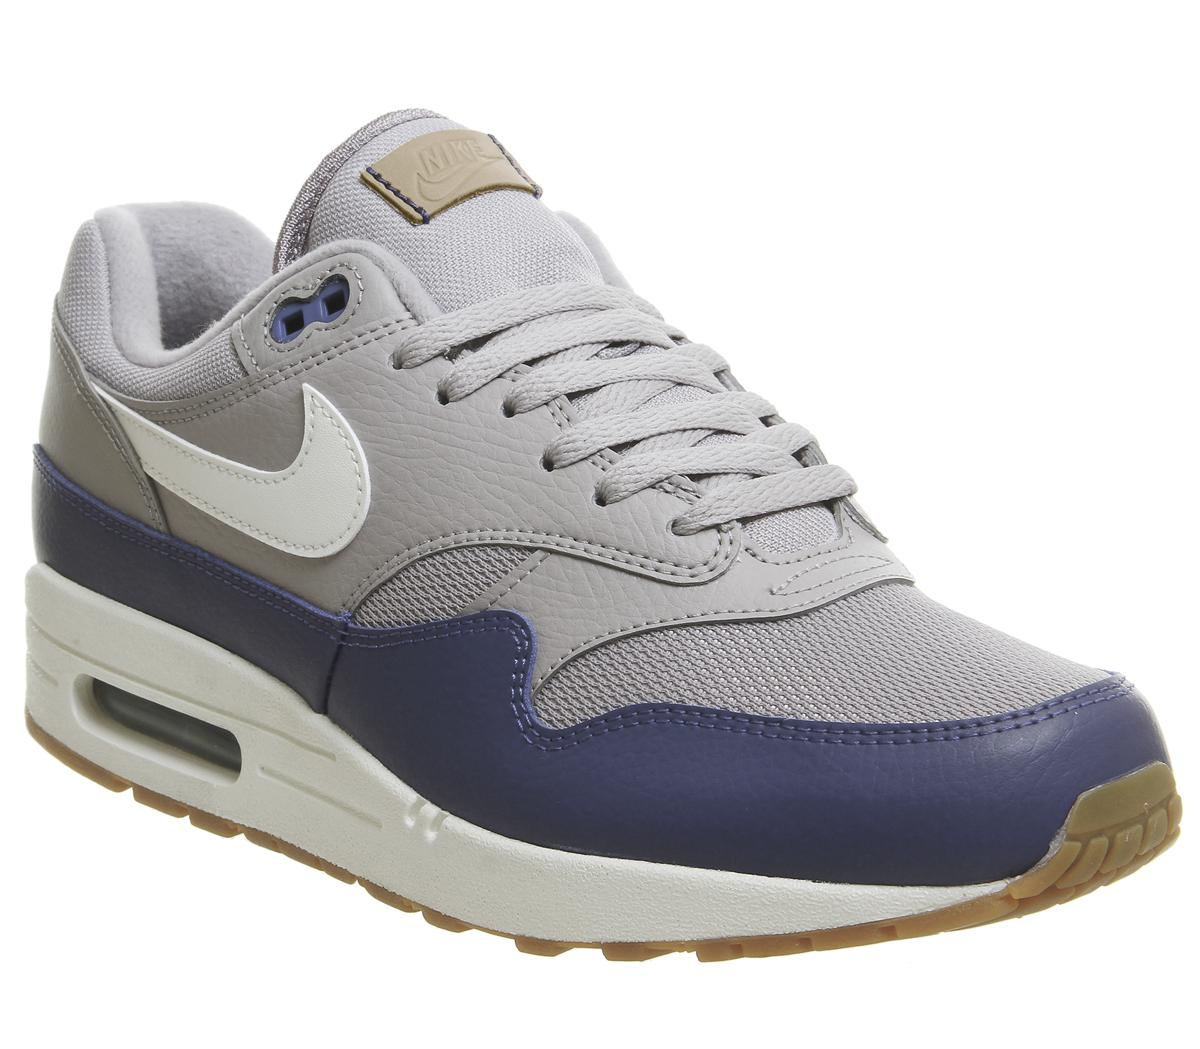 5cdc06d35d58a7 ... ireland lyst nike air max 1 trainers in gray for men 292c7 accb7